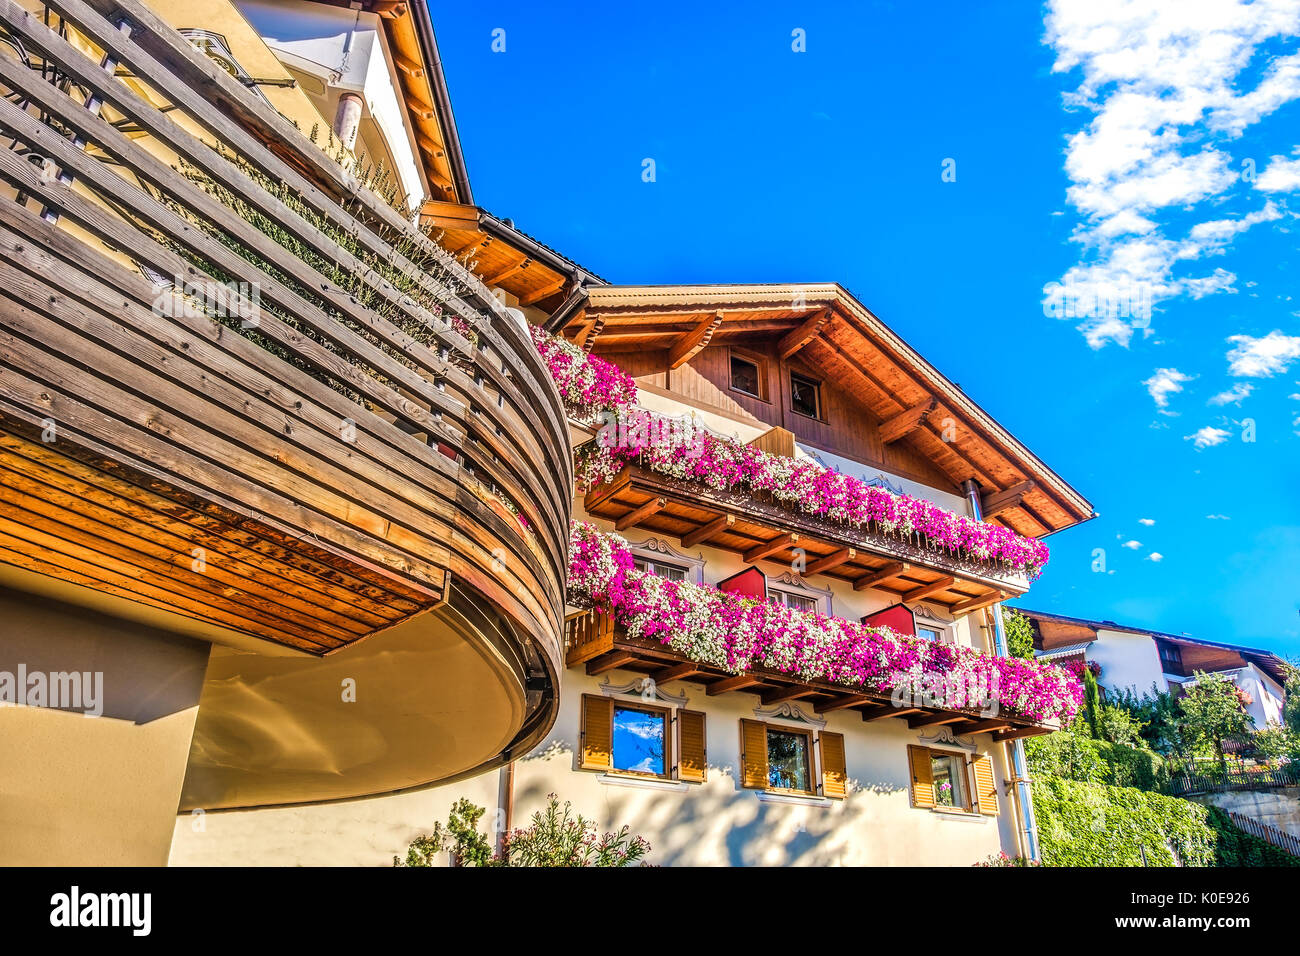 modern mountain chalet purple flowers colorful design south tyrol accomodation - Stock Image